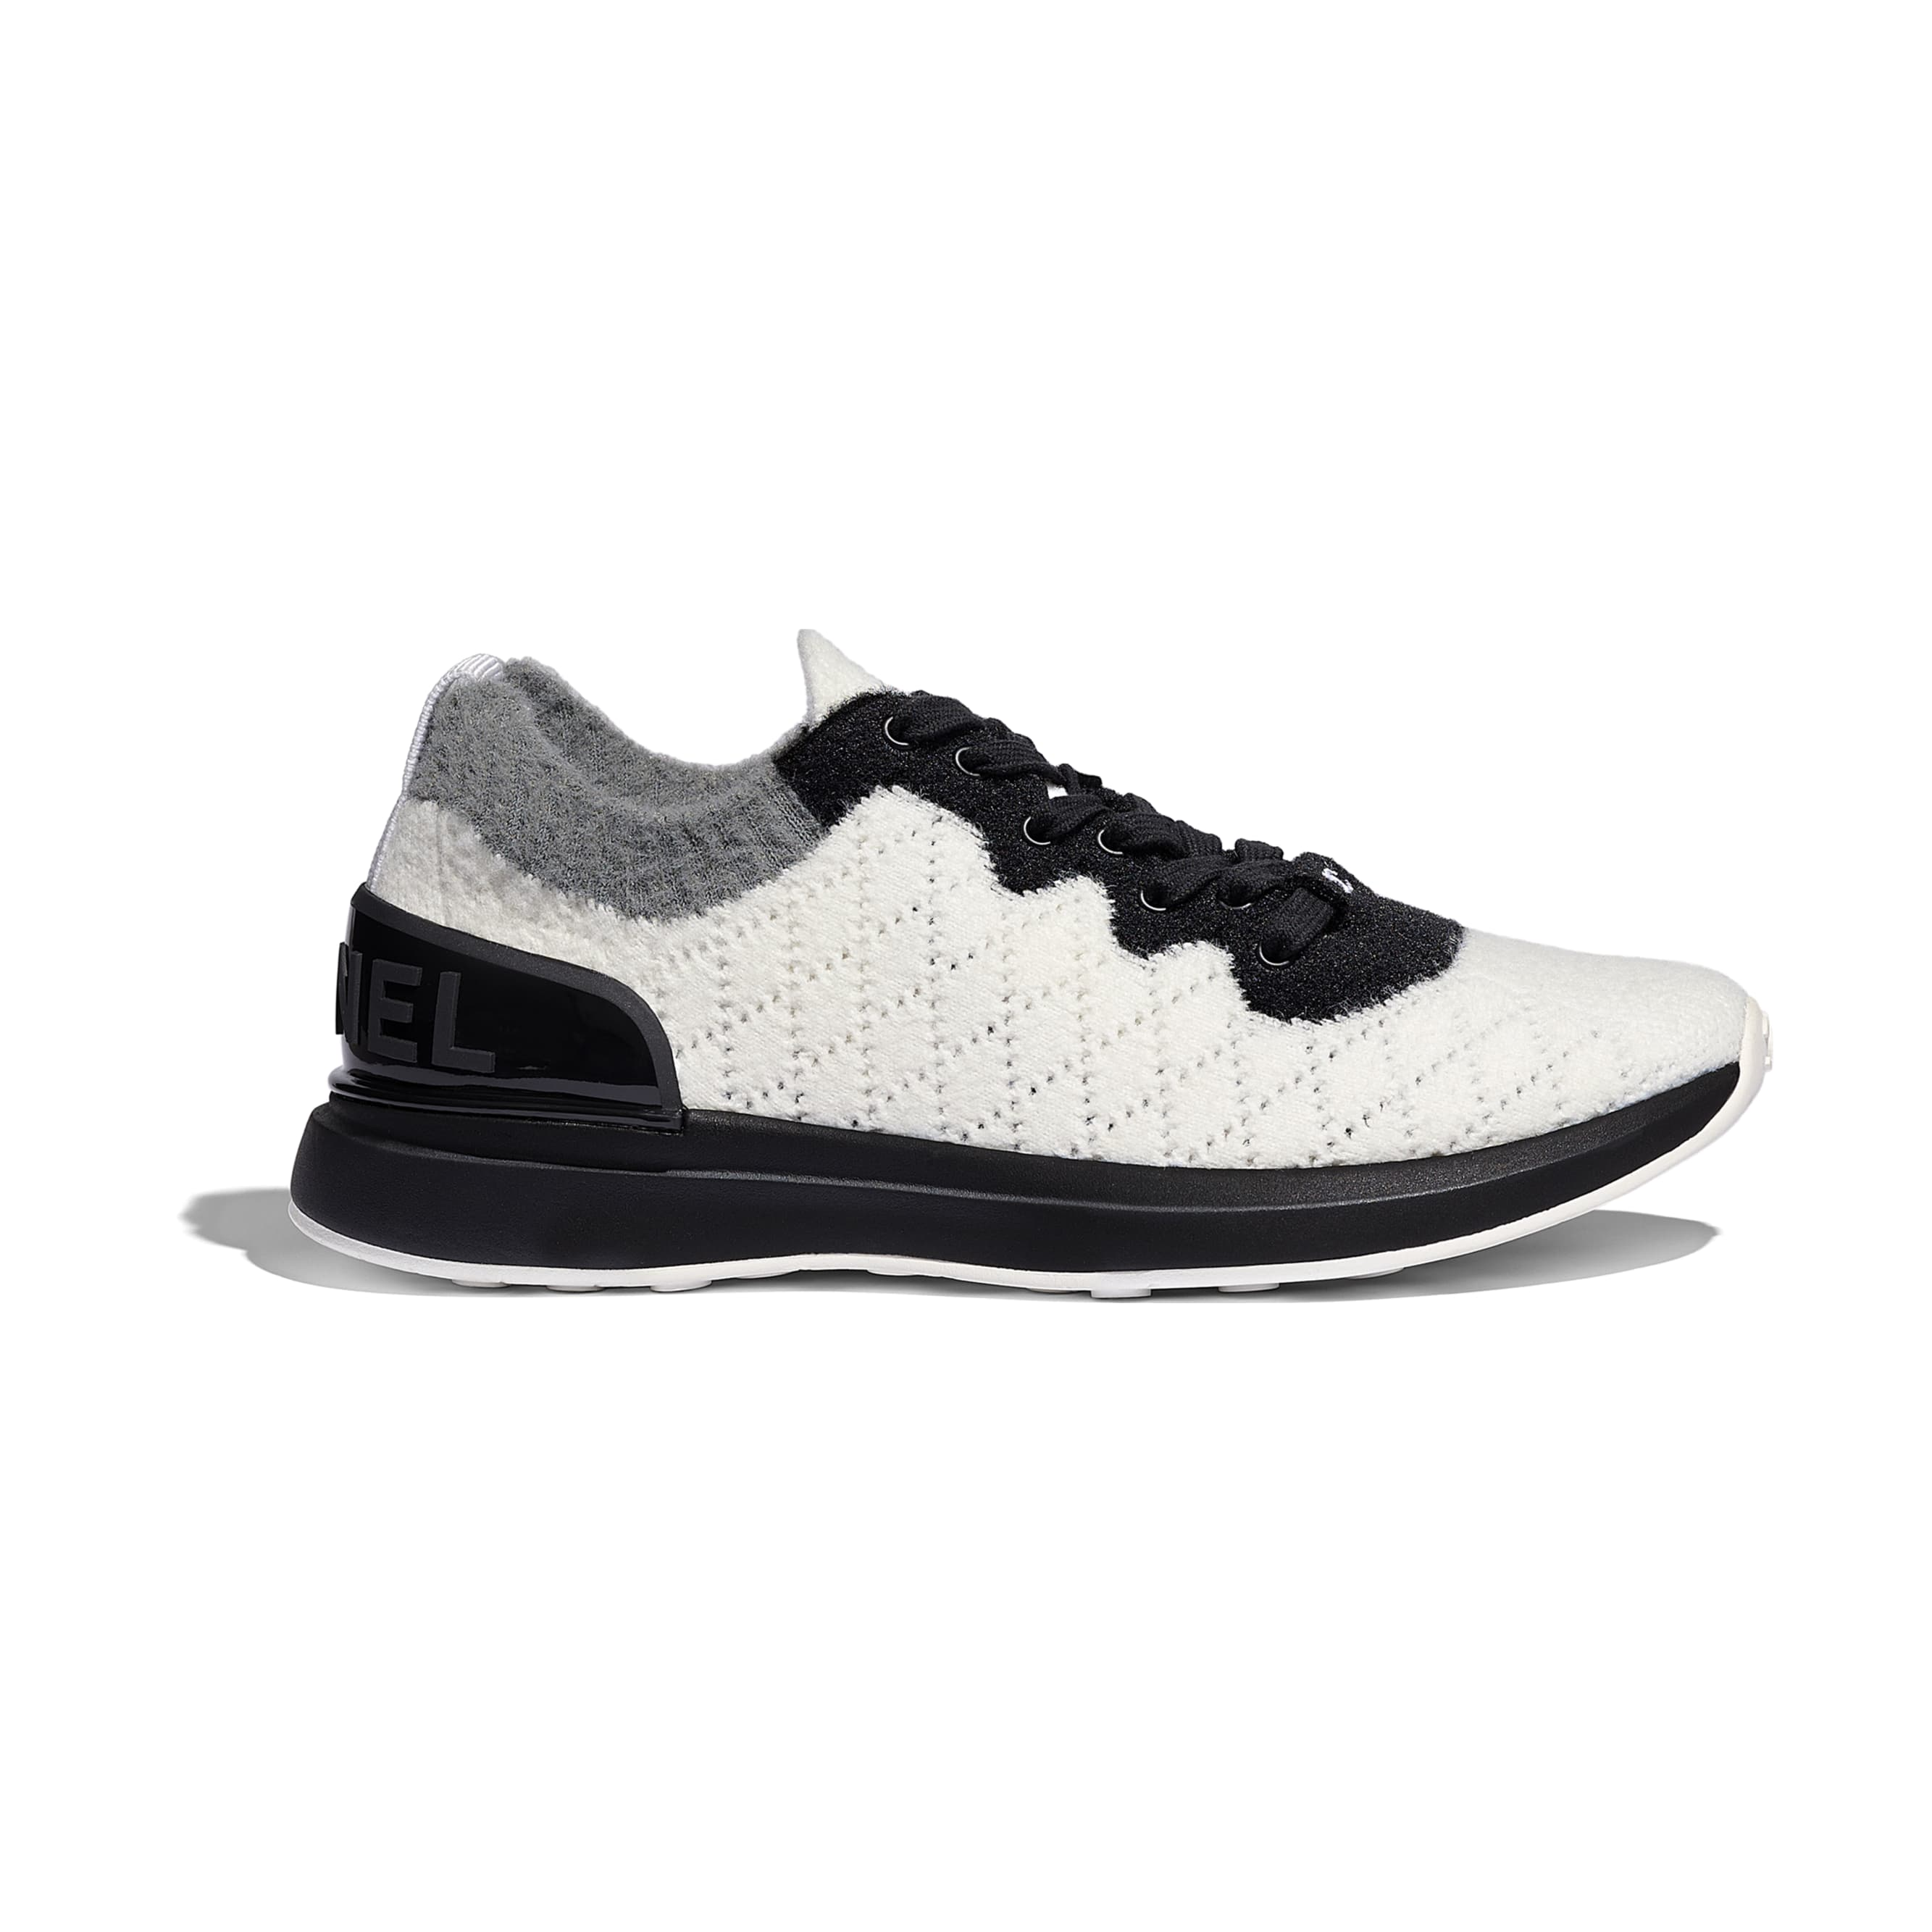 Trainers - White, Black & Gray - Mixed Fibres - Default view - see standard sized version